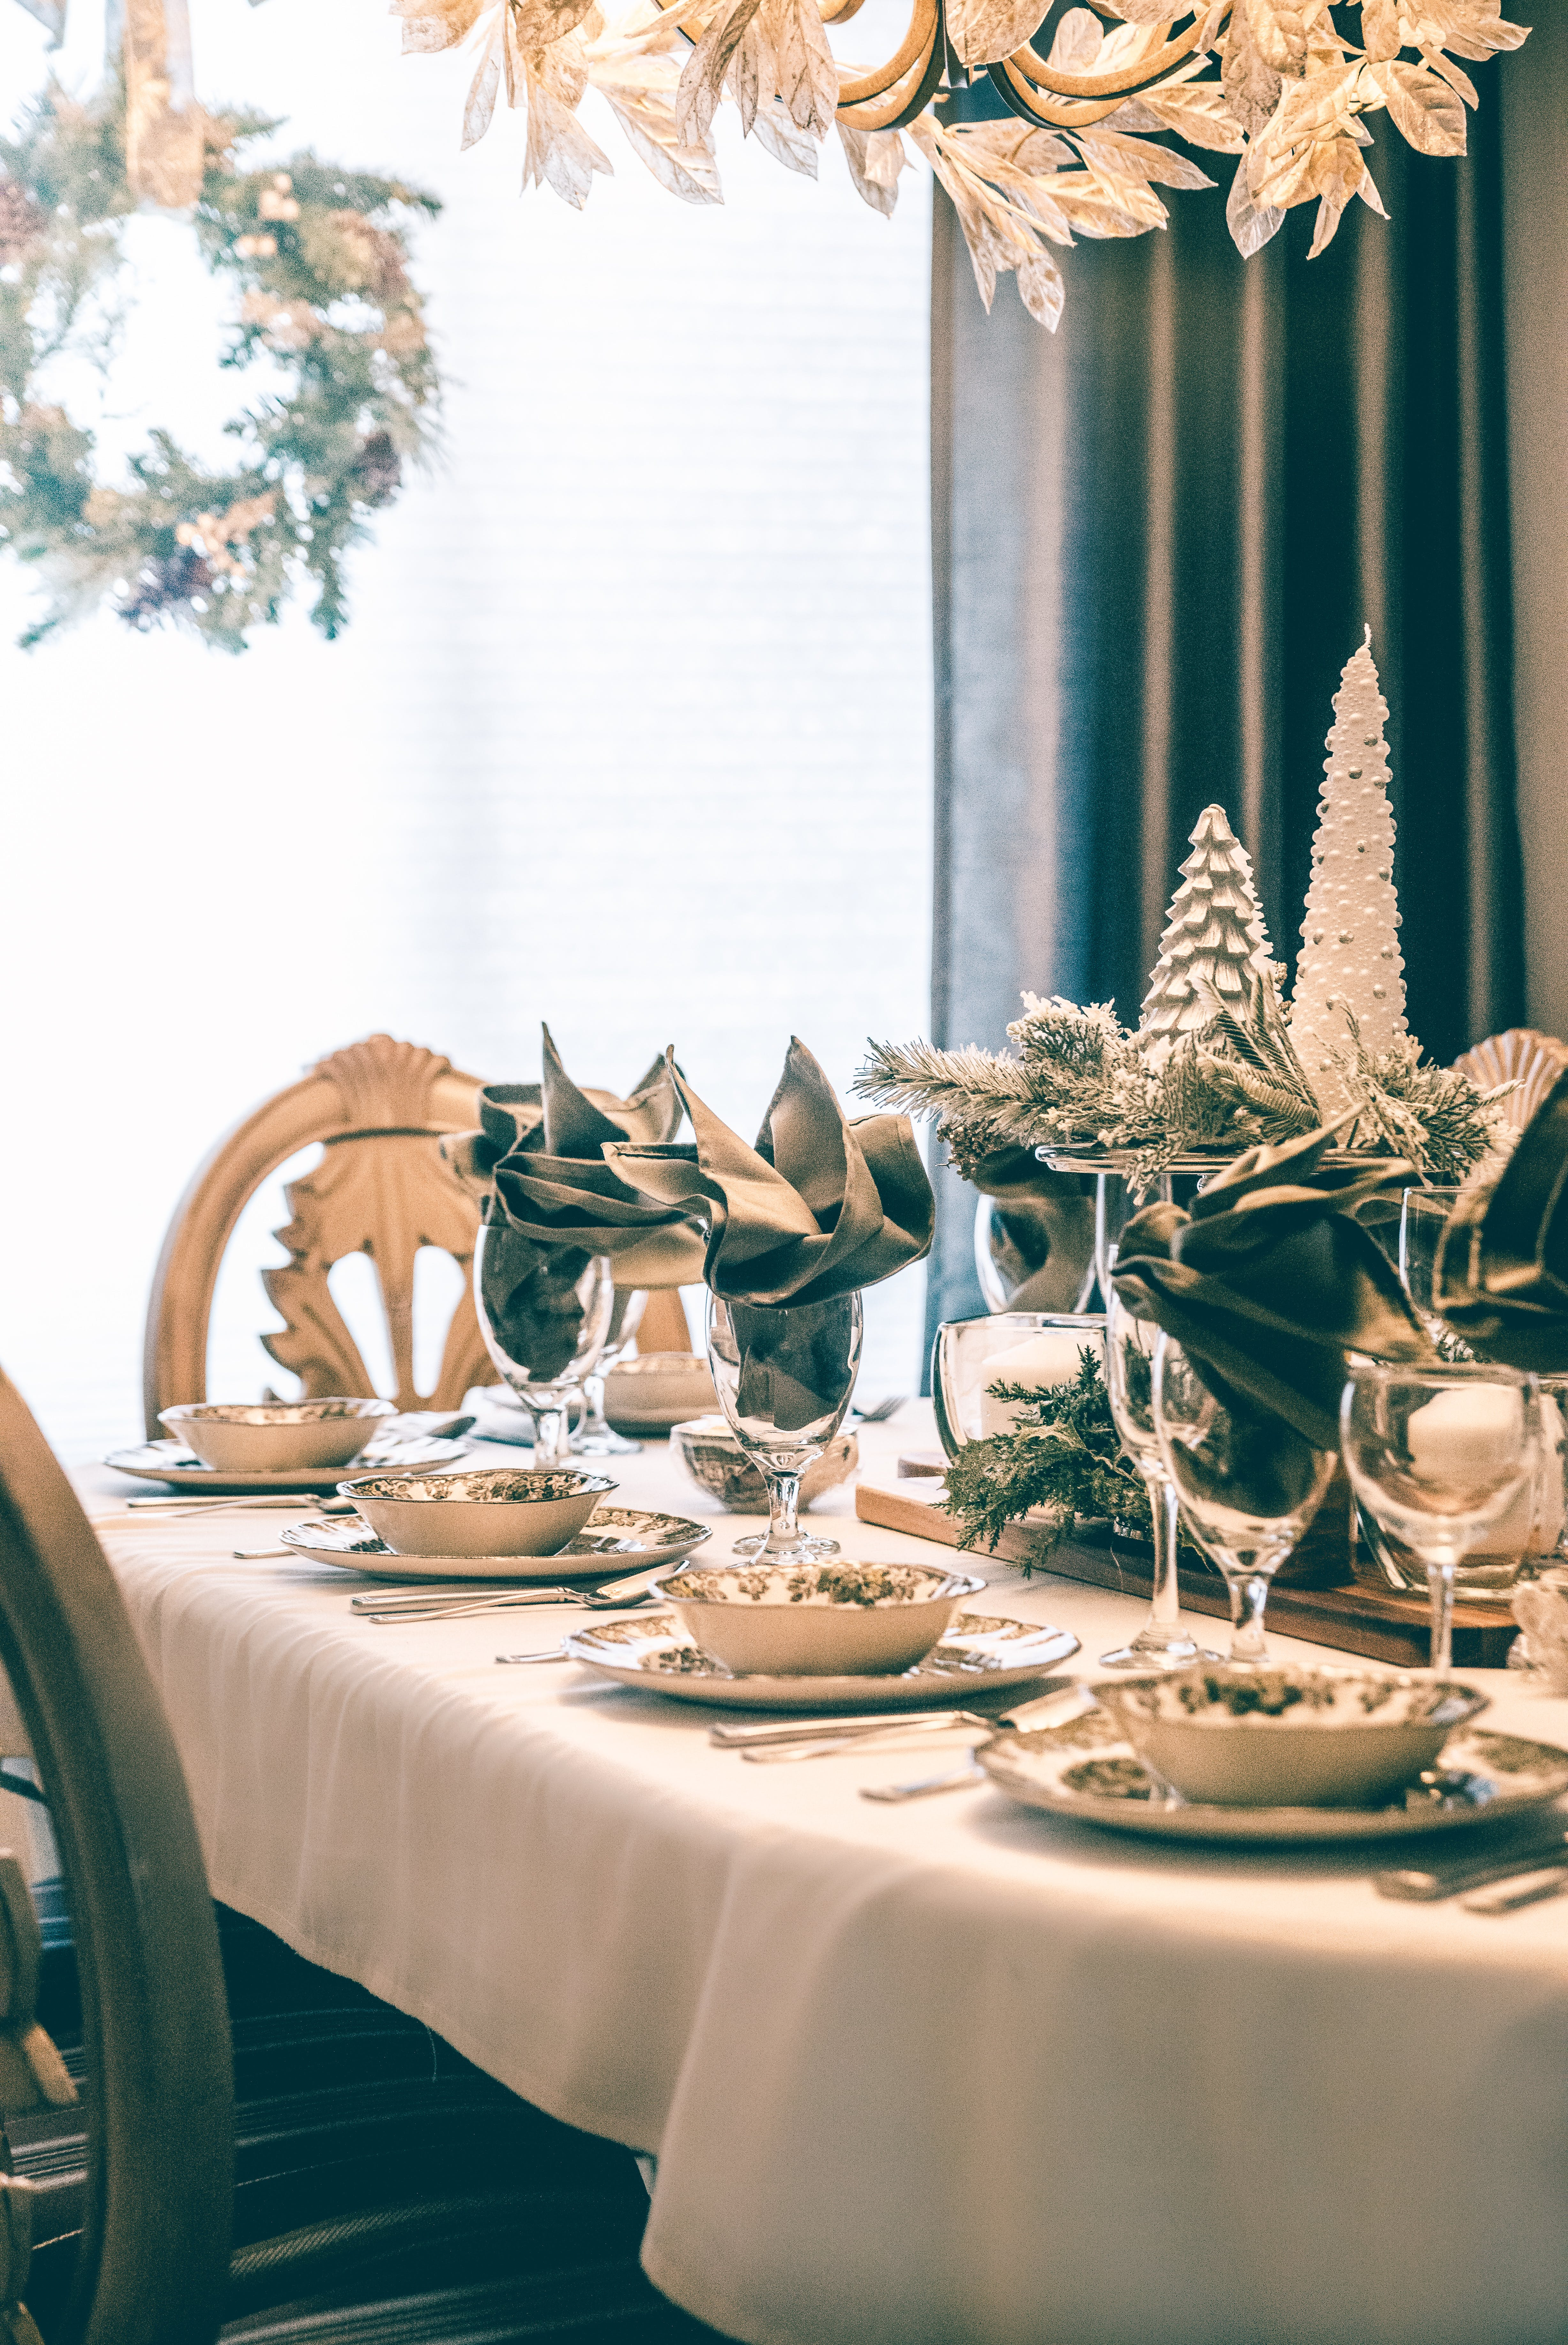 Free stock photo of bowls, chairs, christmas decorations, decorations